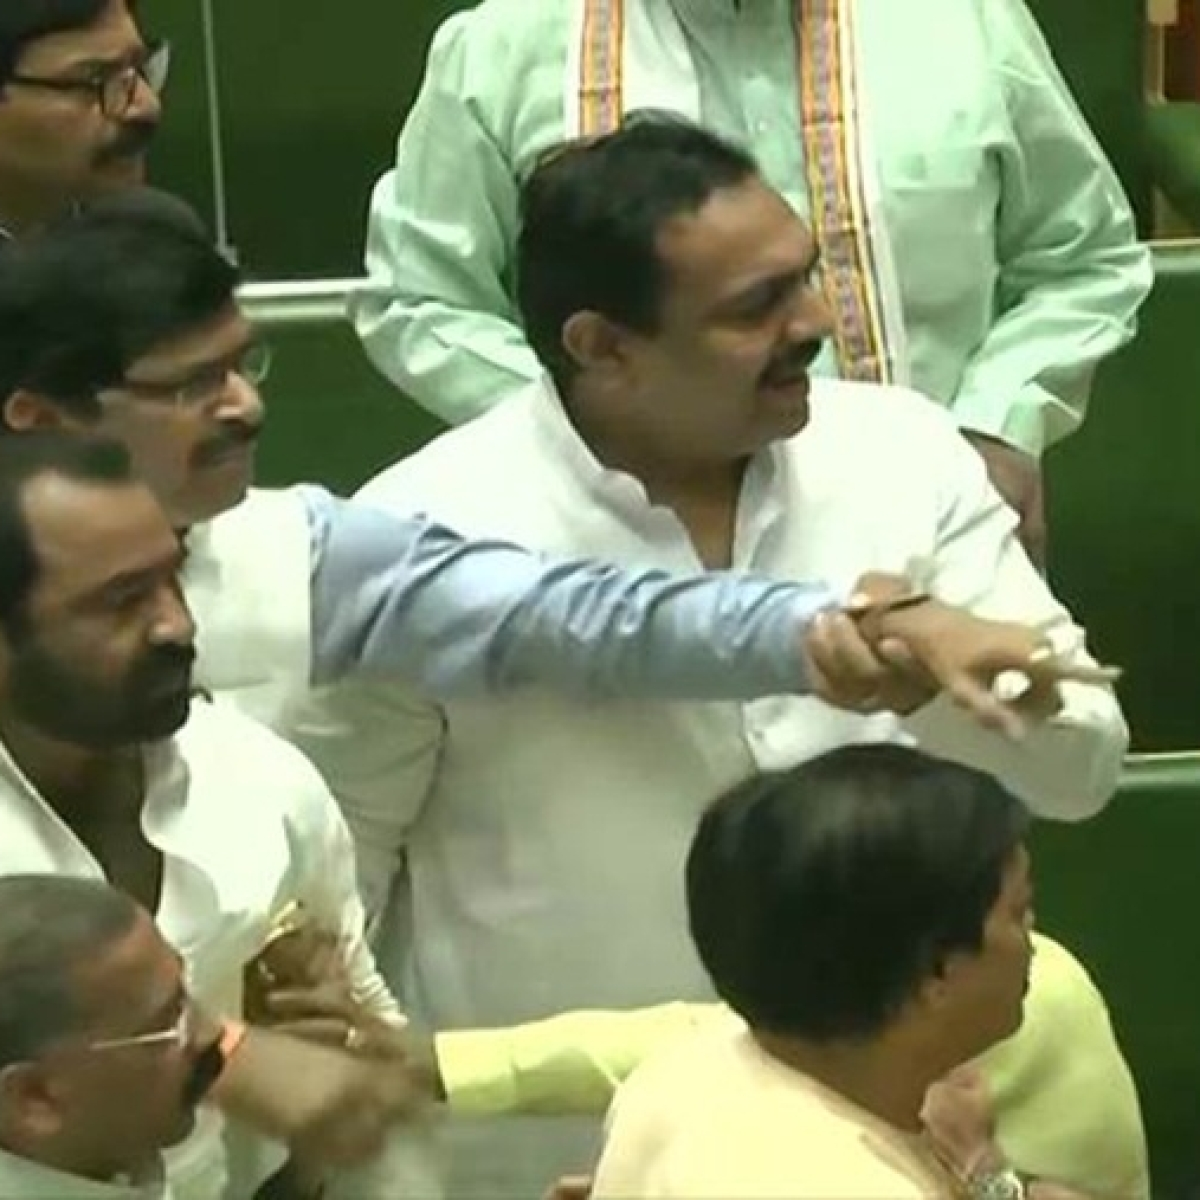 Shiv Sena-BJP relationship hits new low, after scuffle between MLAs in Maharashtra Assembly